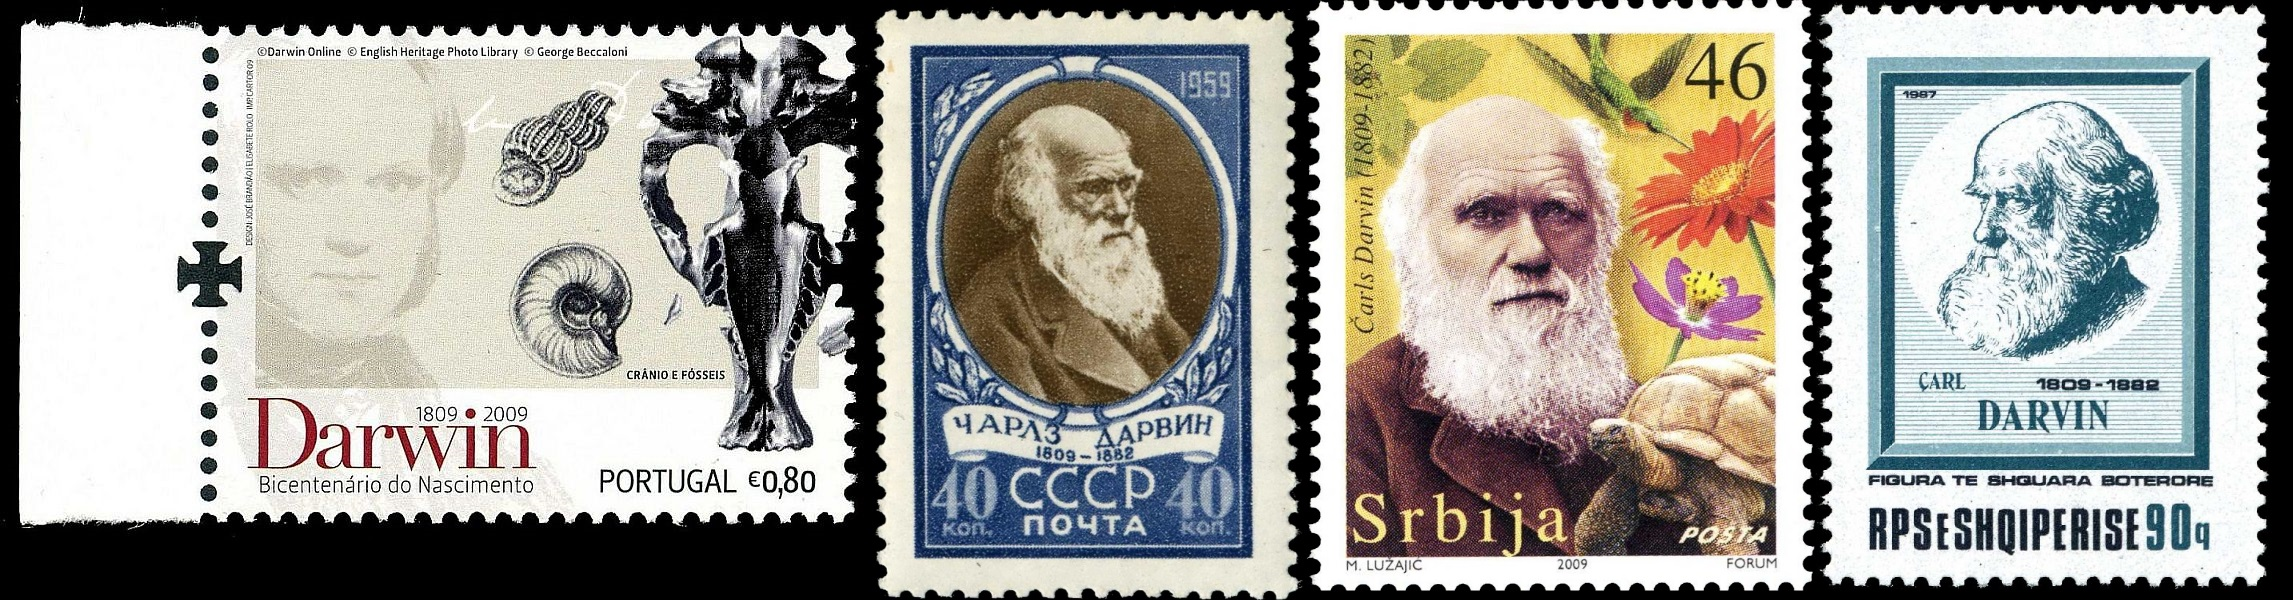 Charles Darwin and other contributors of Paleontology on stamps